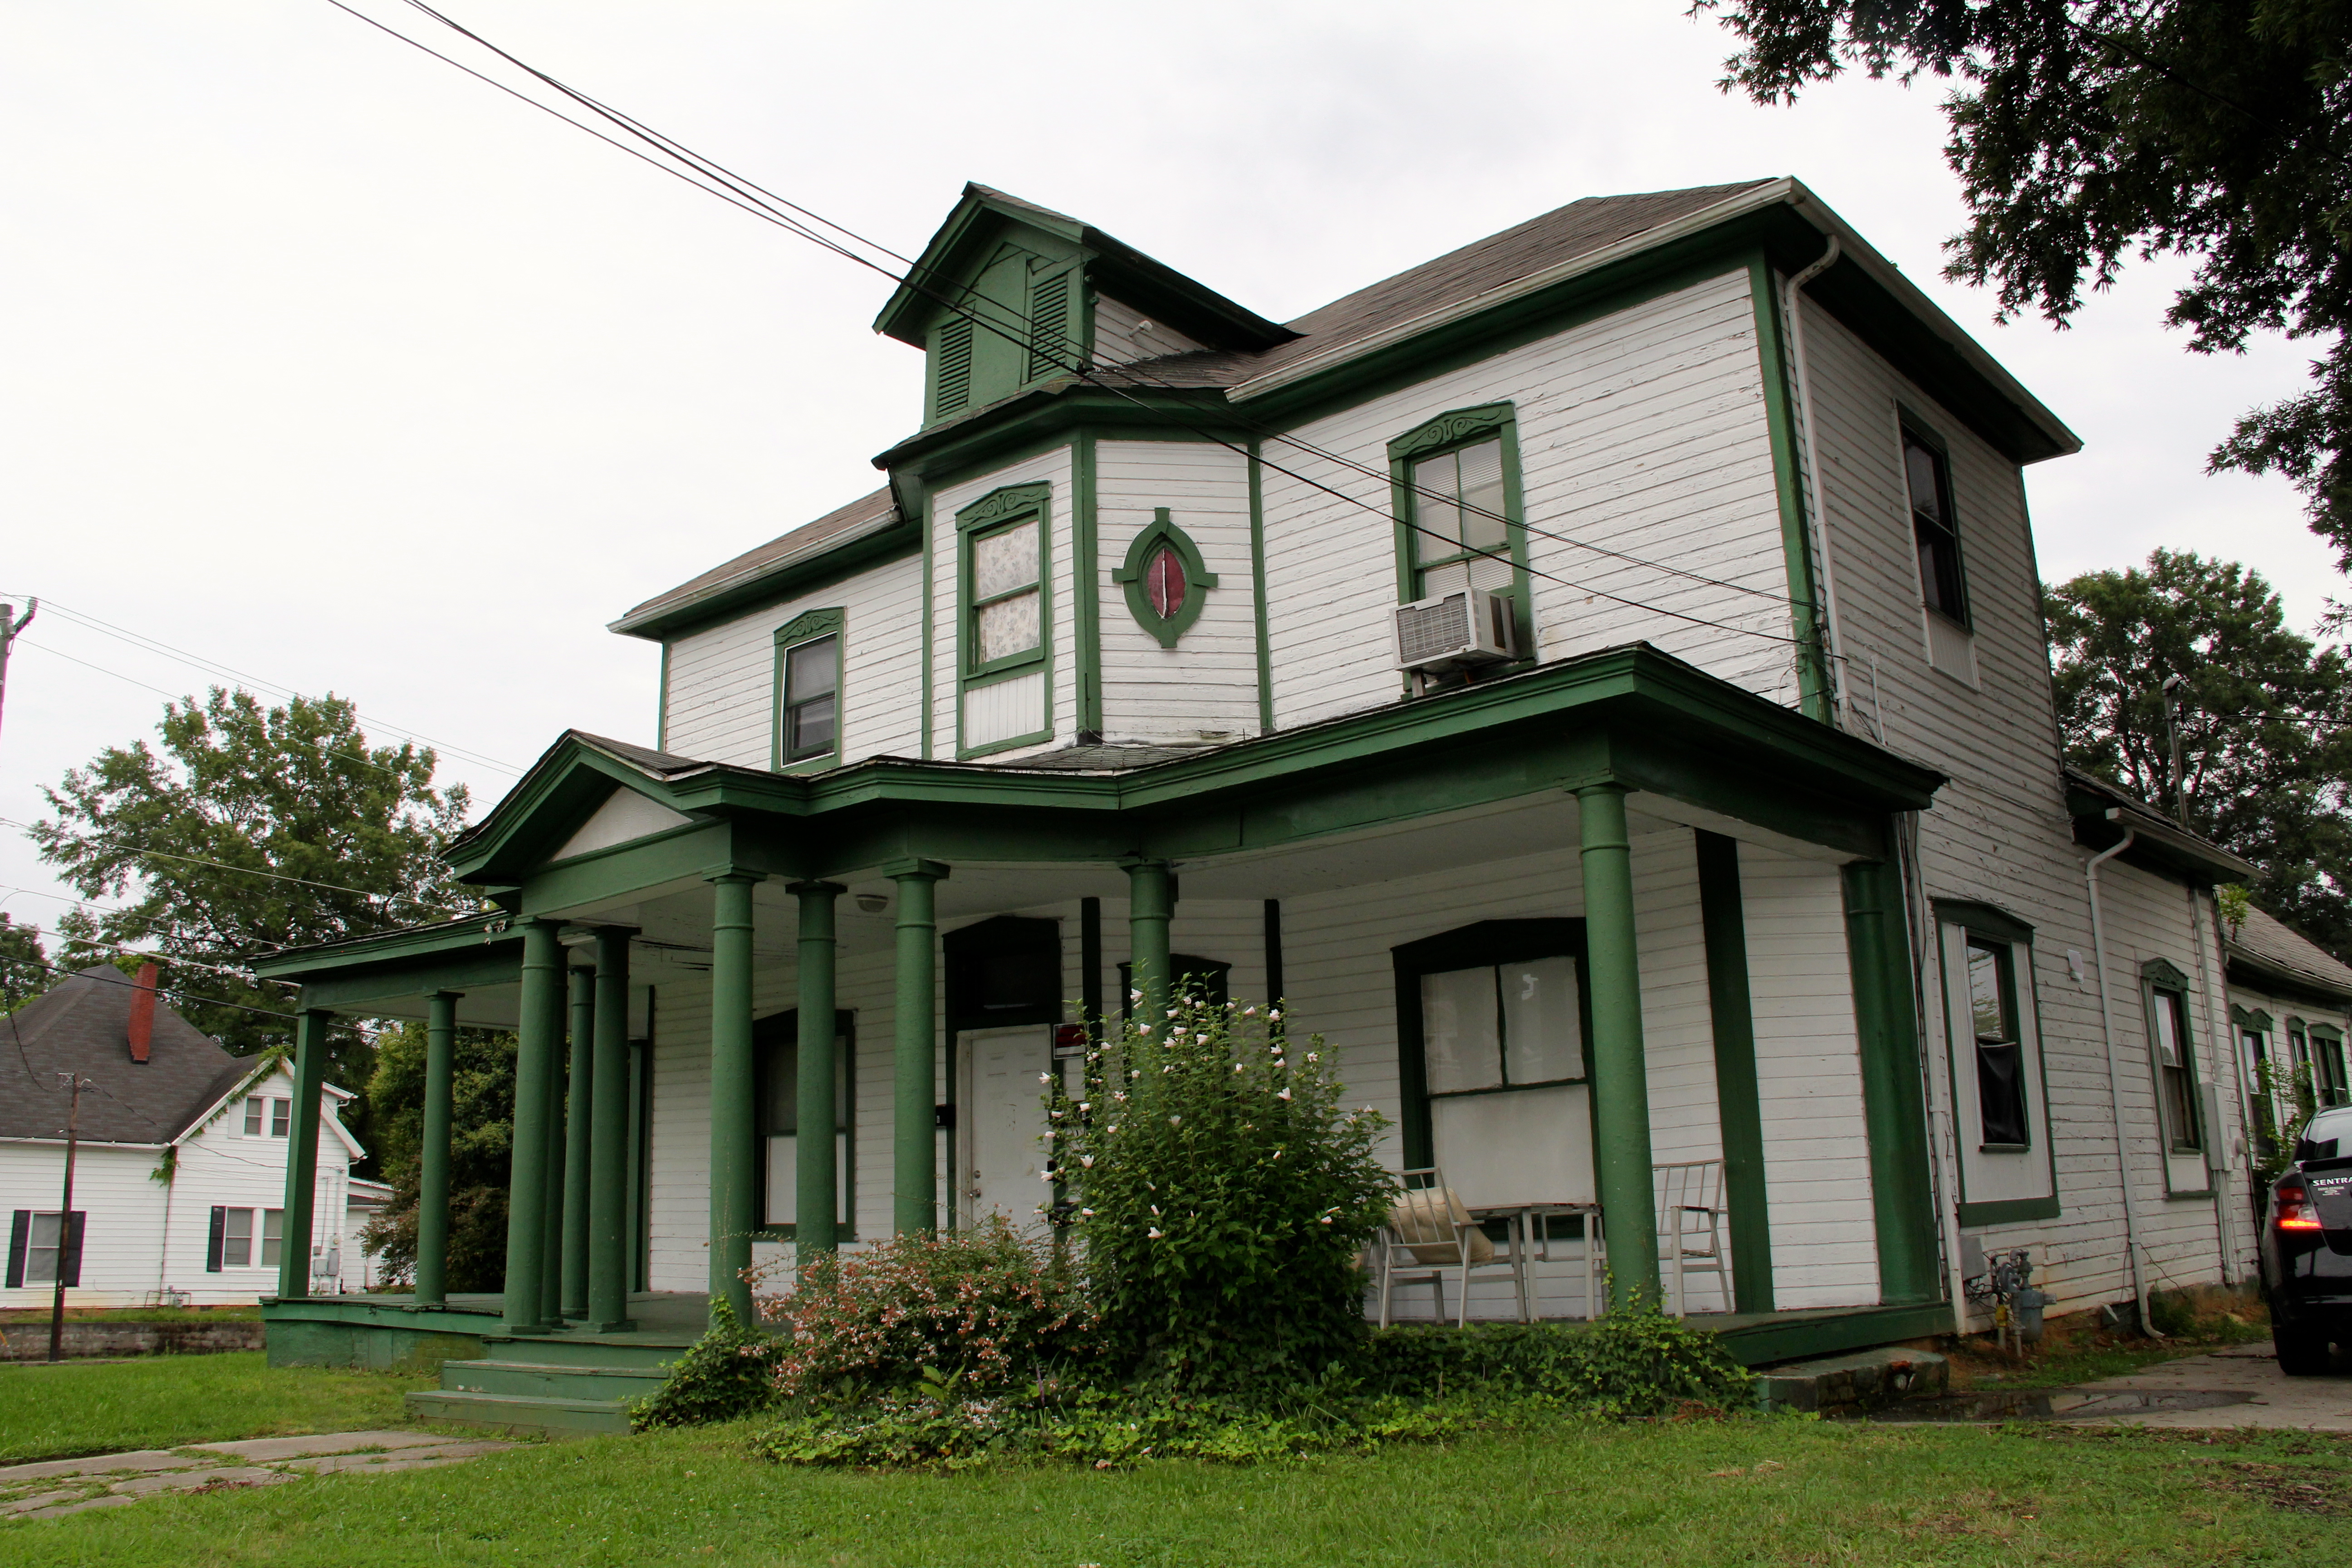 White Wood House : File:Holloway Street Historic District - White wooden house with green ...